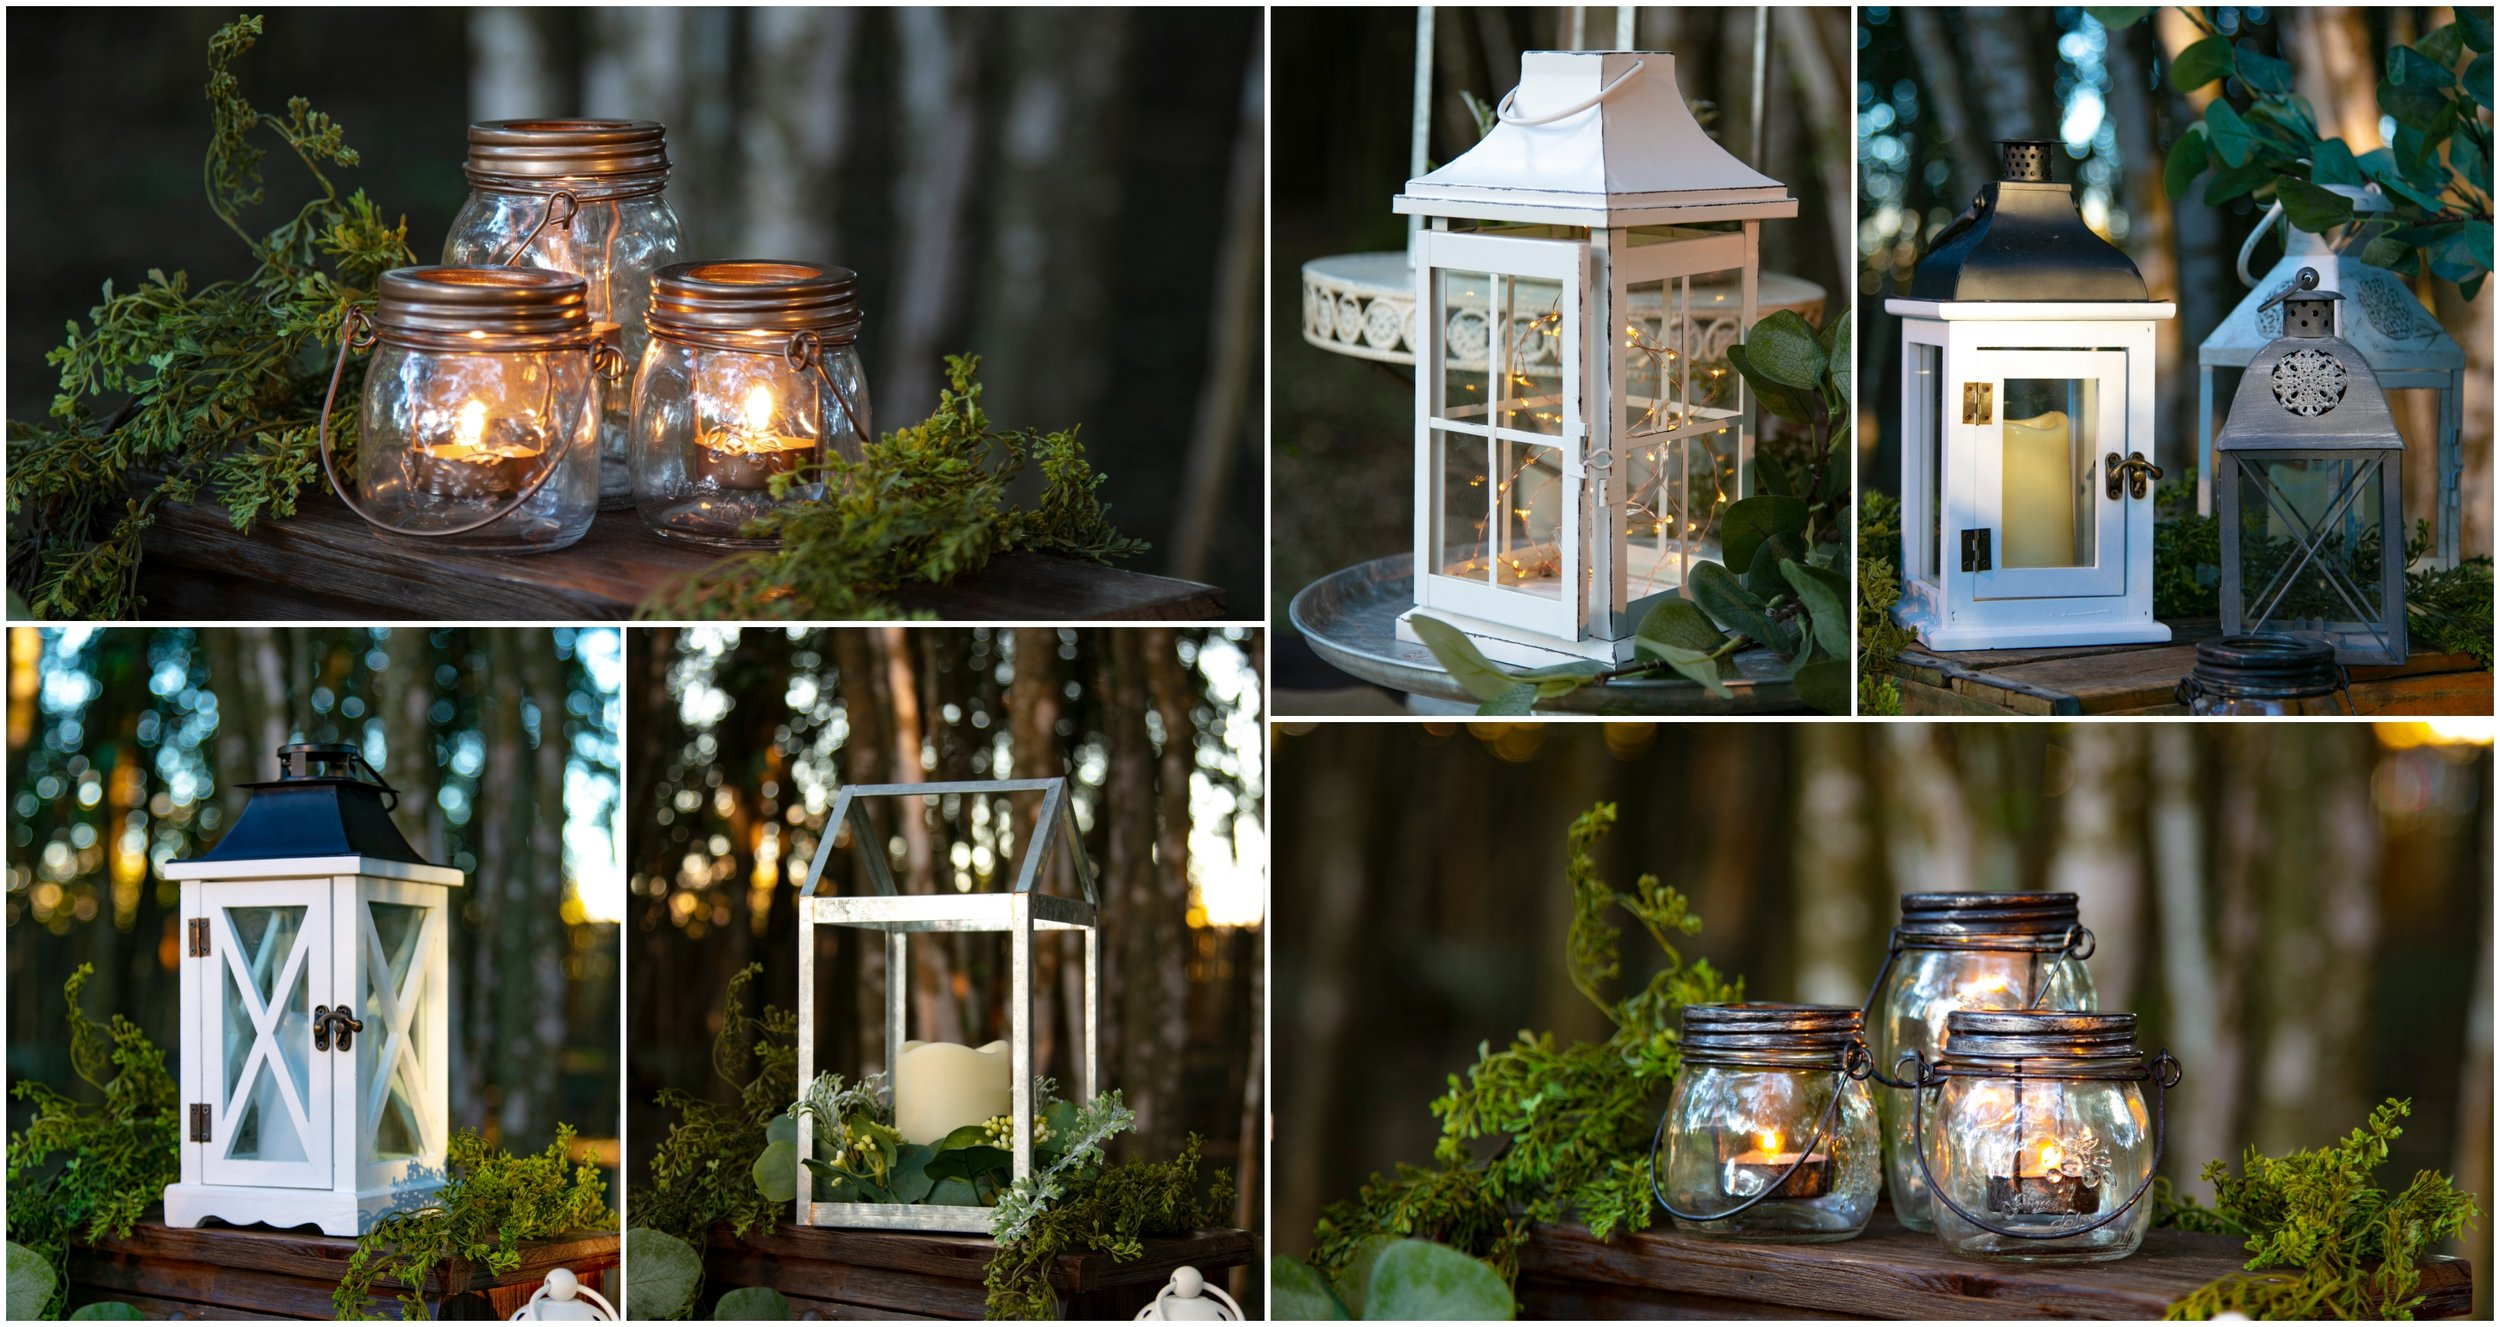 Illumination Rental Package  Includes: All Lanterns, LED Candles and Fairy Lights   Cost: $299.00